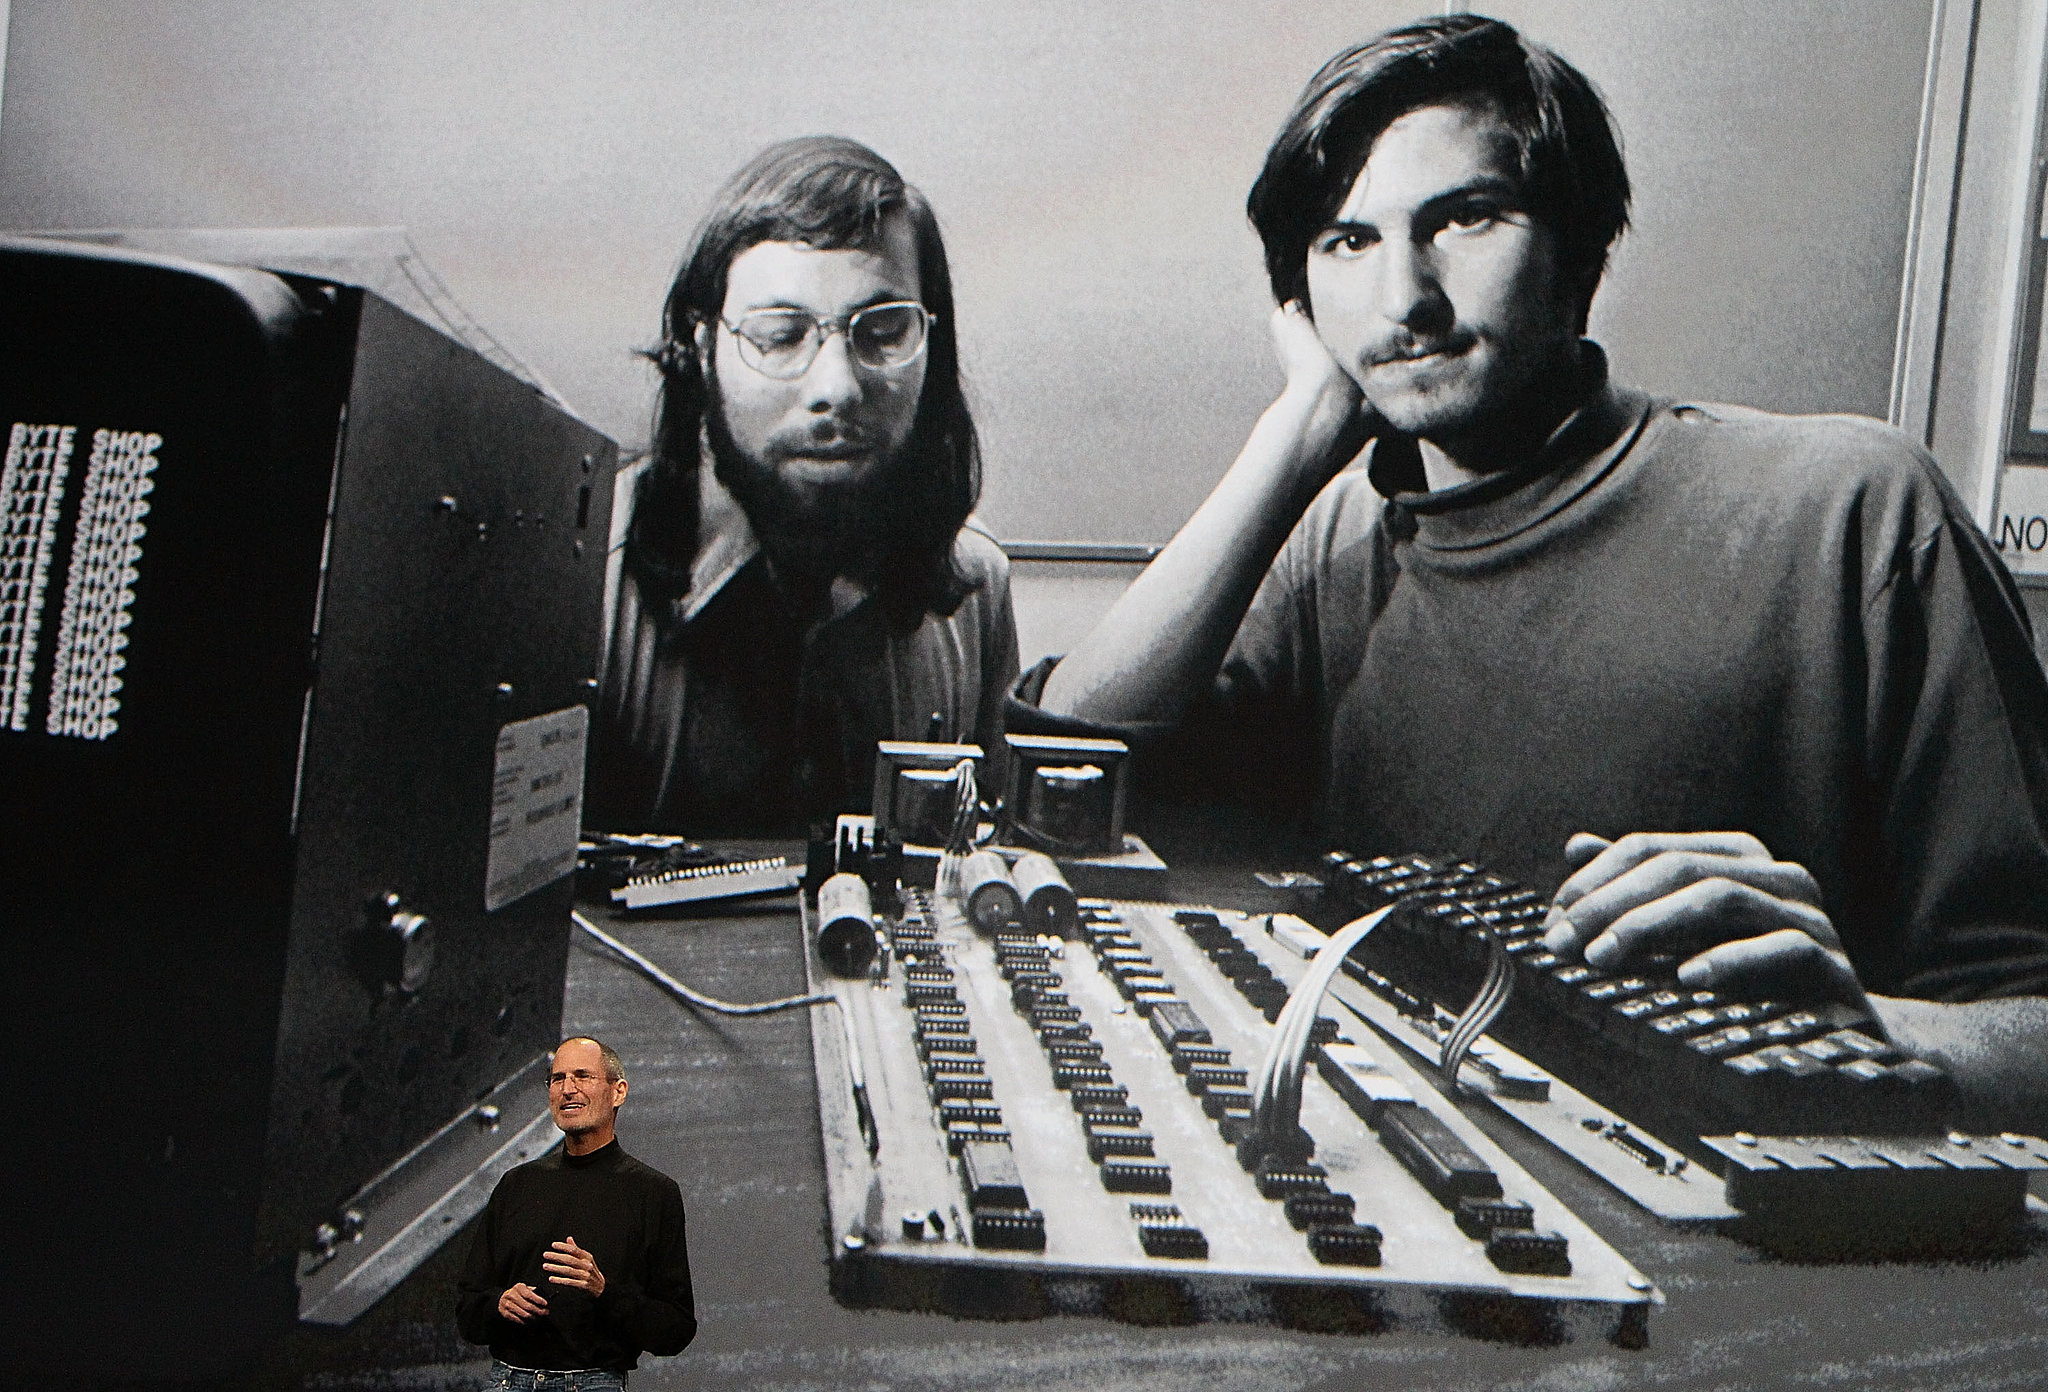 No, it's not a trick; Apple was founded on April Fool's Day in 1976.